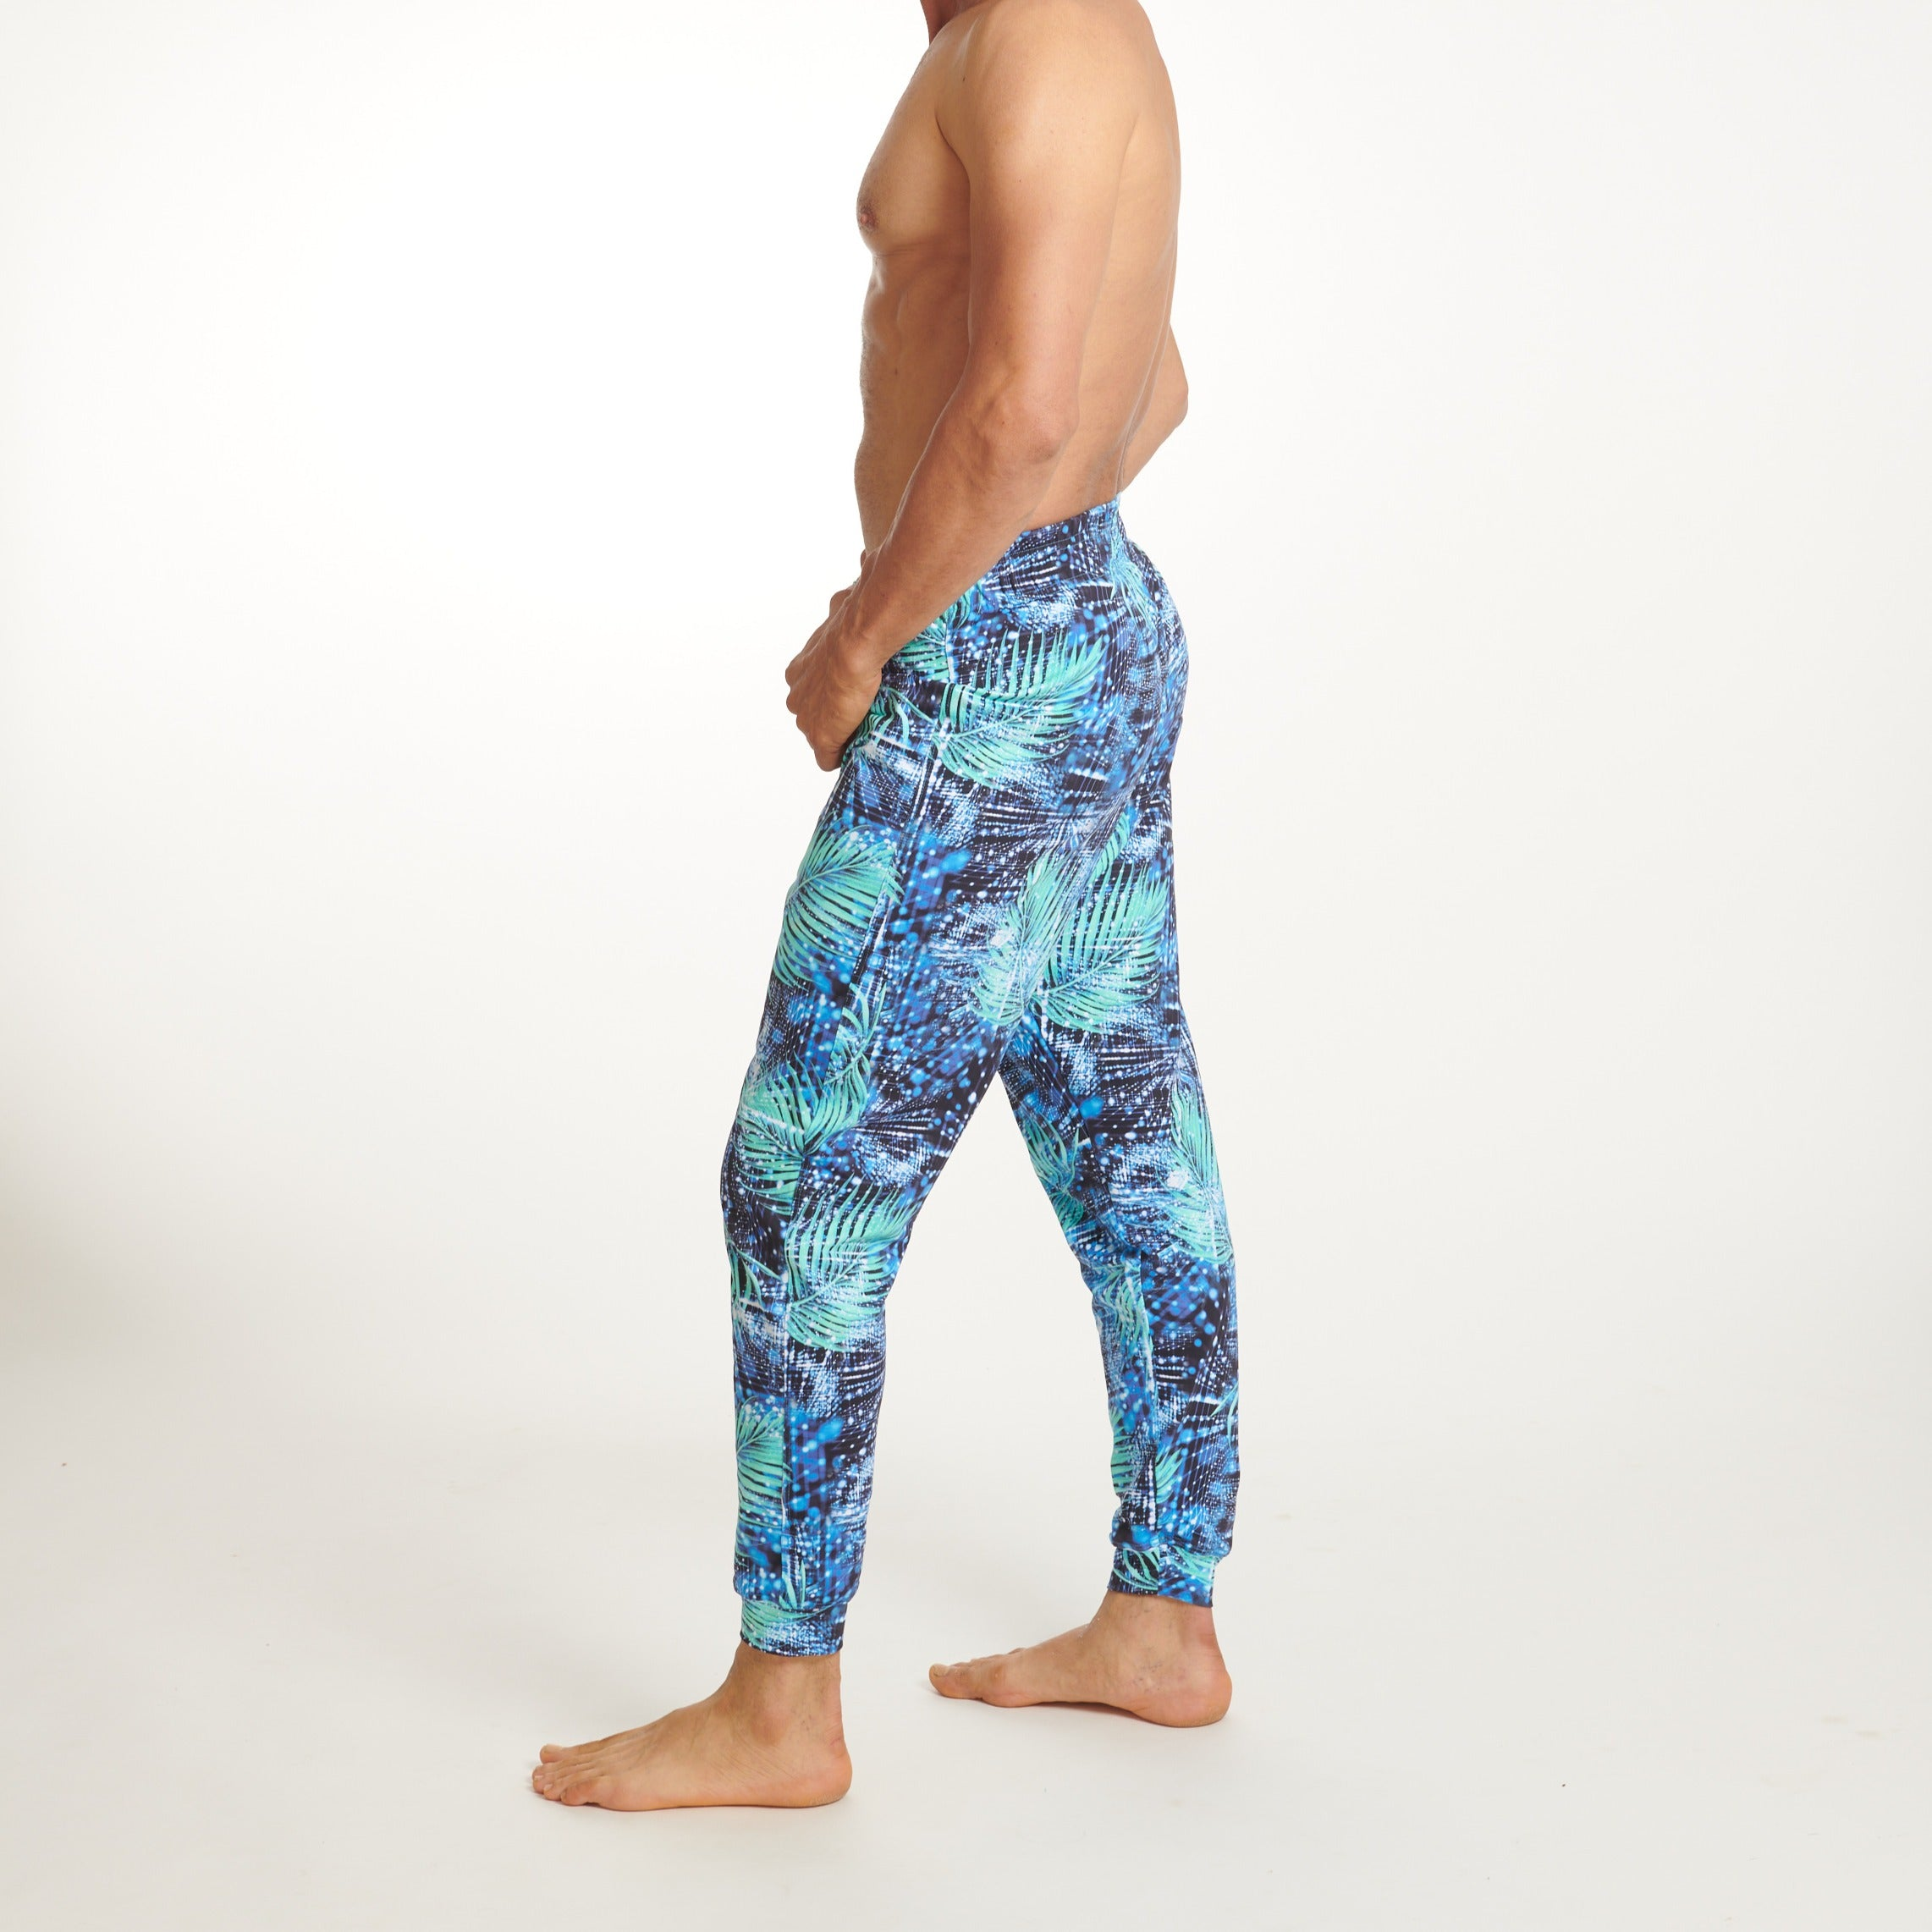 Infinity Man Leggings